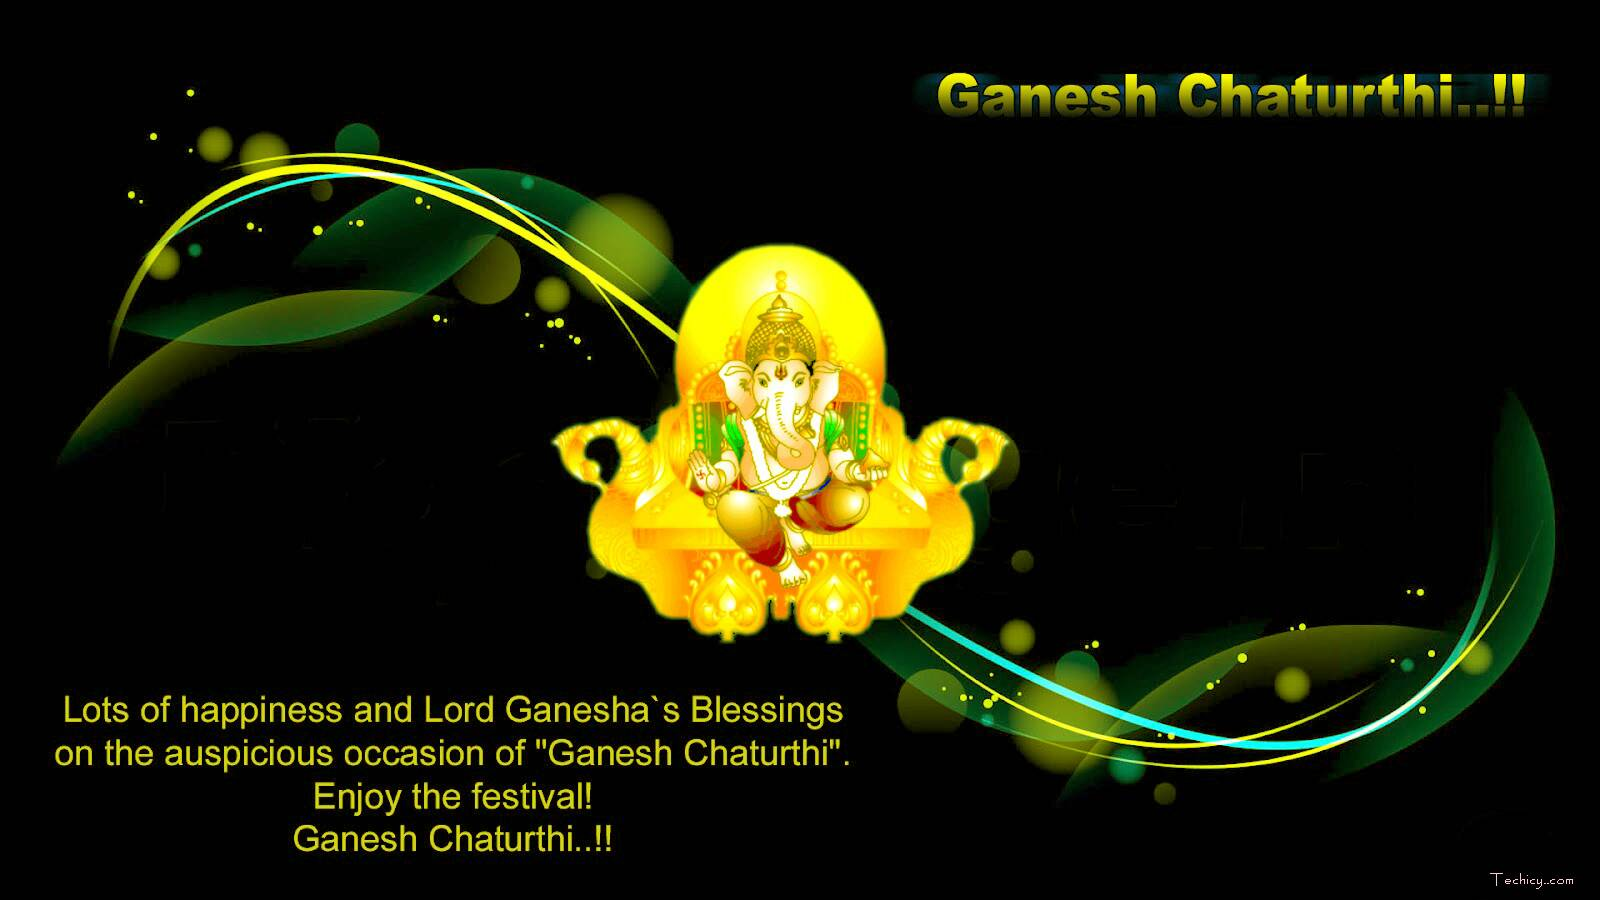 Hd wallpaper ganpati -  Source Techicy Com